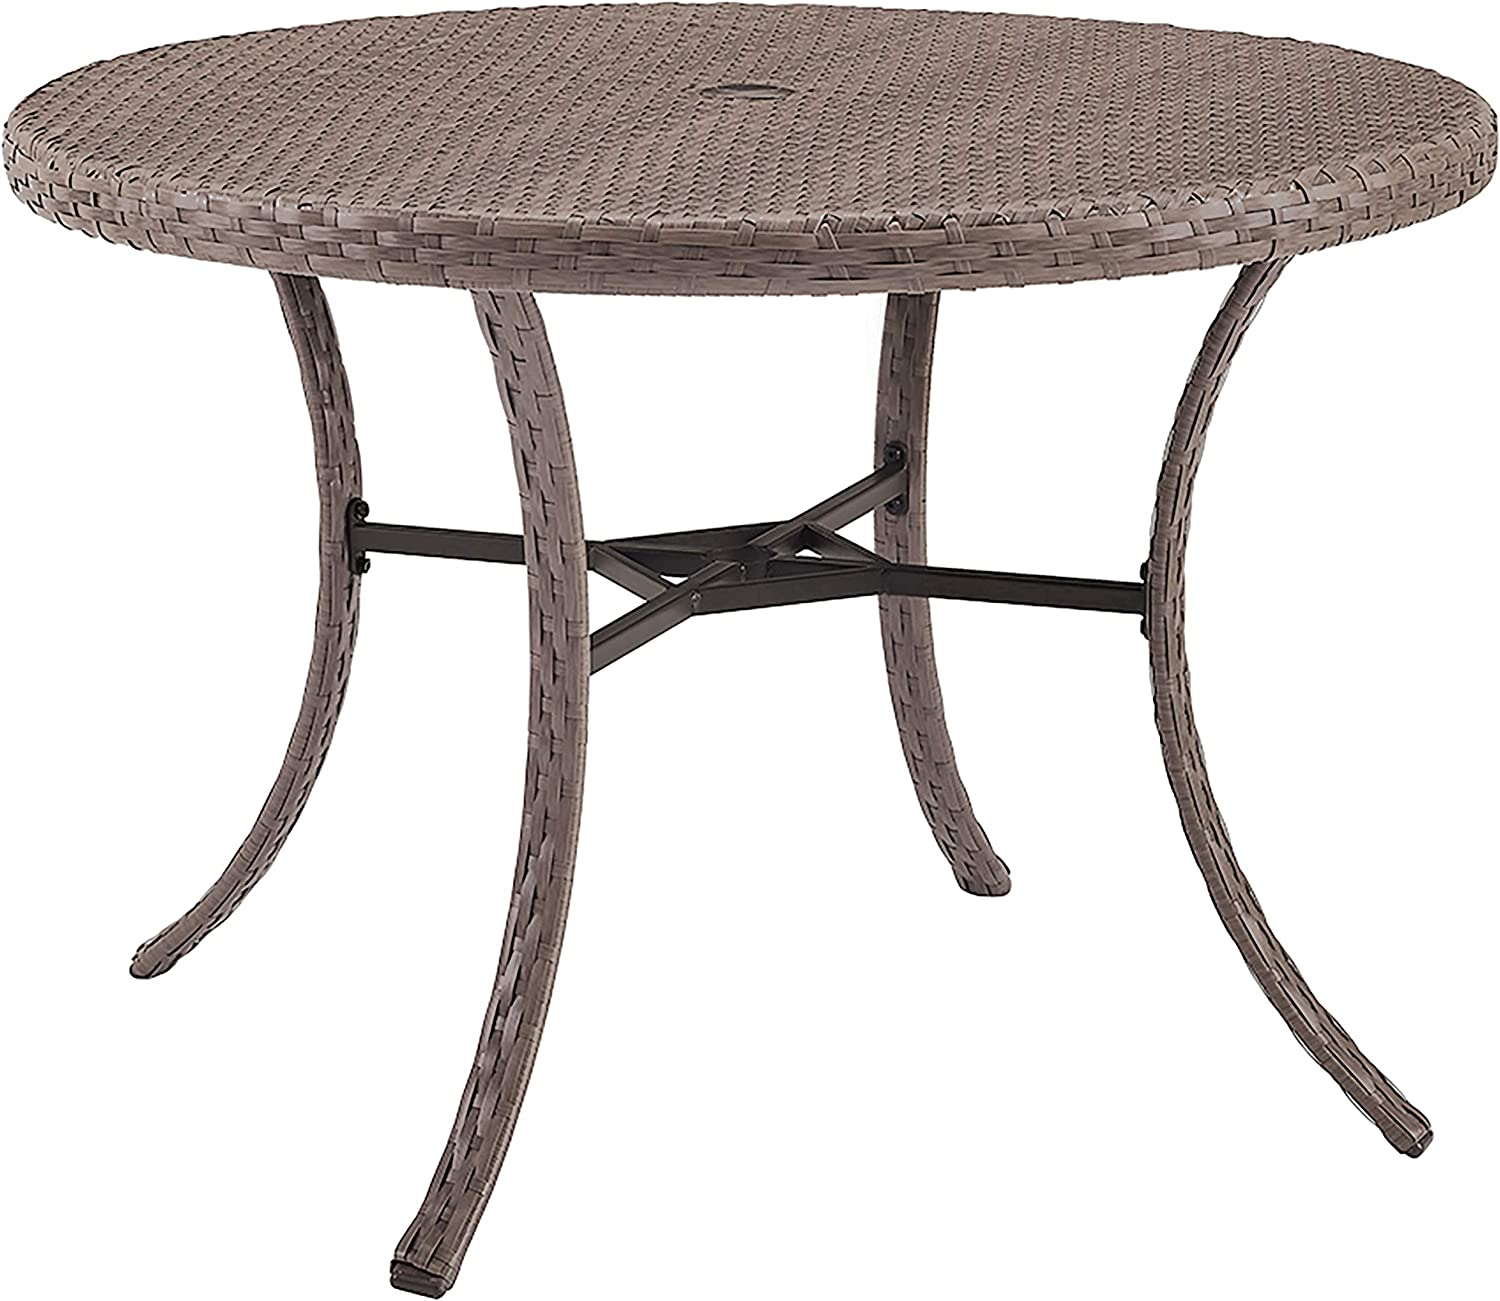 Crosley Furniture CO7239-DW Tribeca Outdoor Wicker Round Dining Table, Driftwood Grey